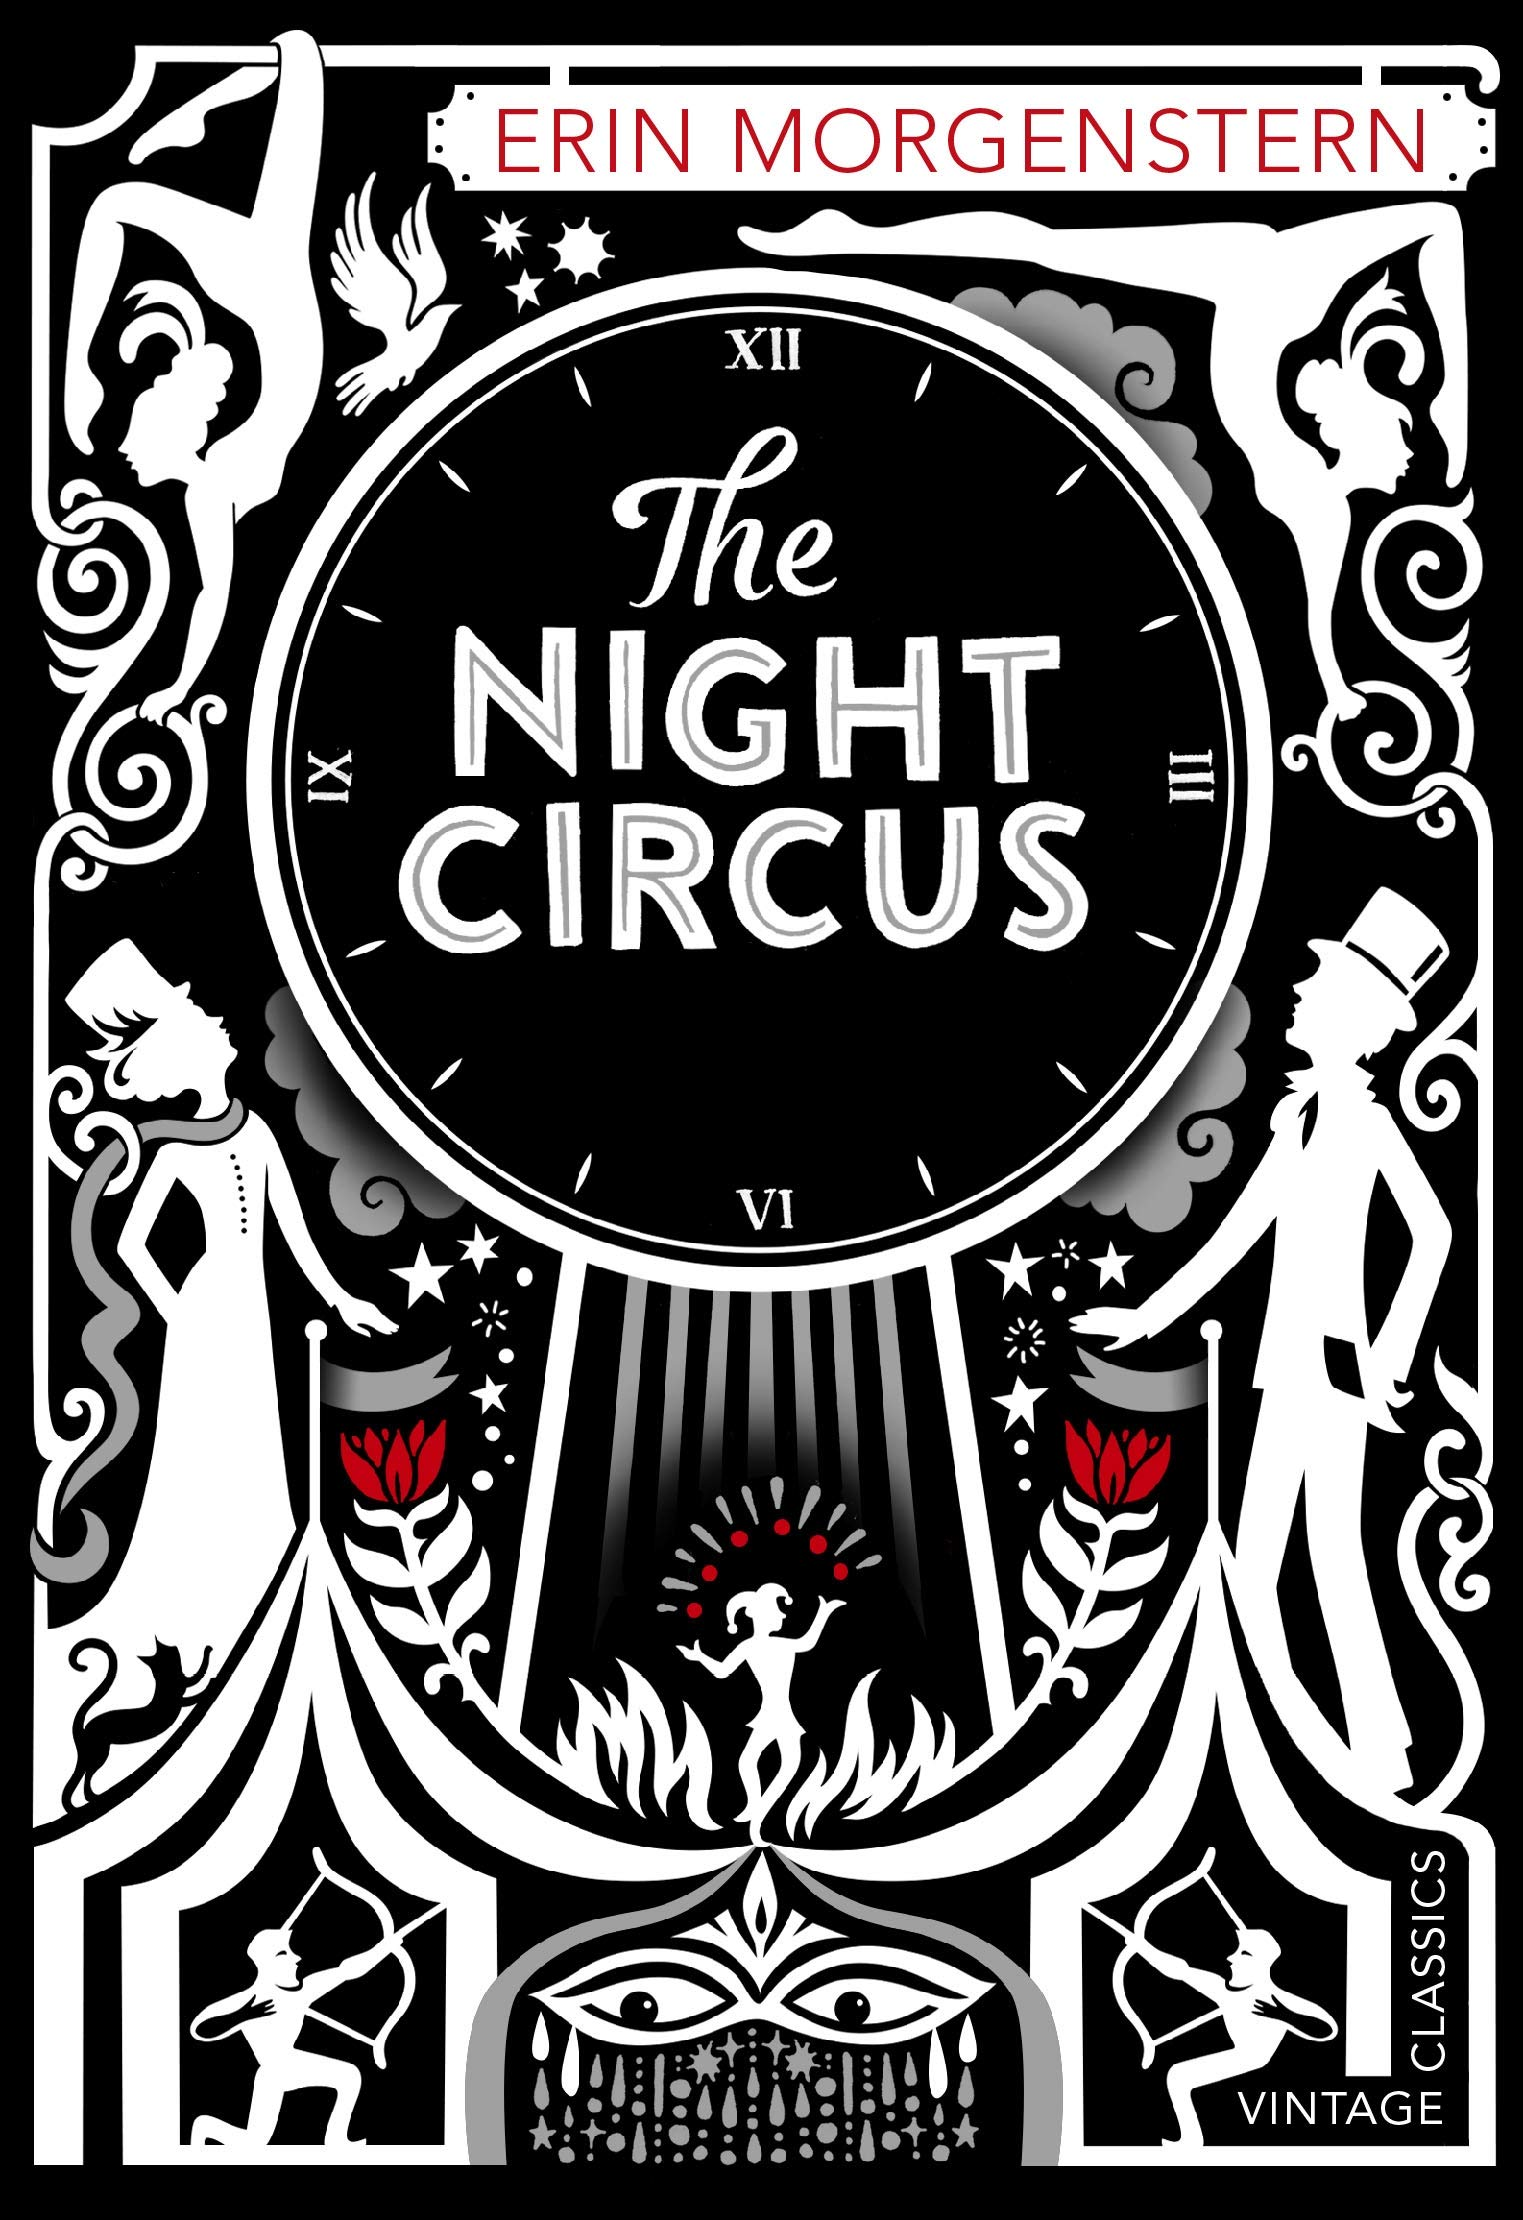 NIGHT CIRCUS, THE: Erin Morgenstern: 9781784871055: Amazon.com: Books